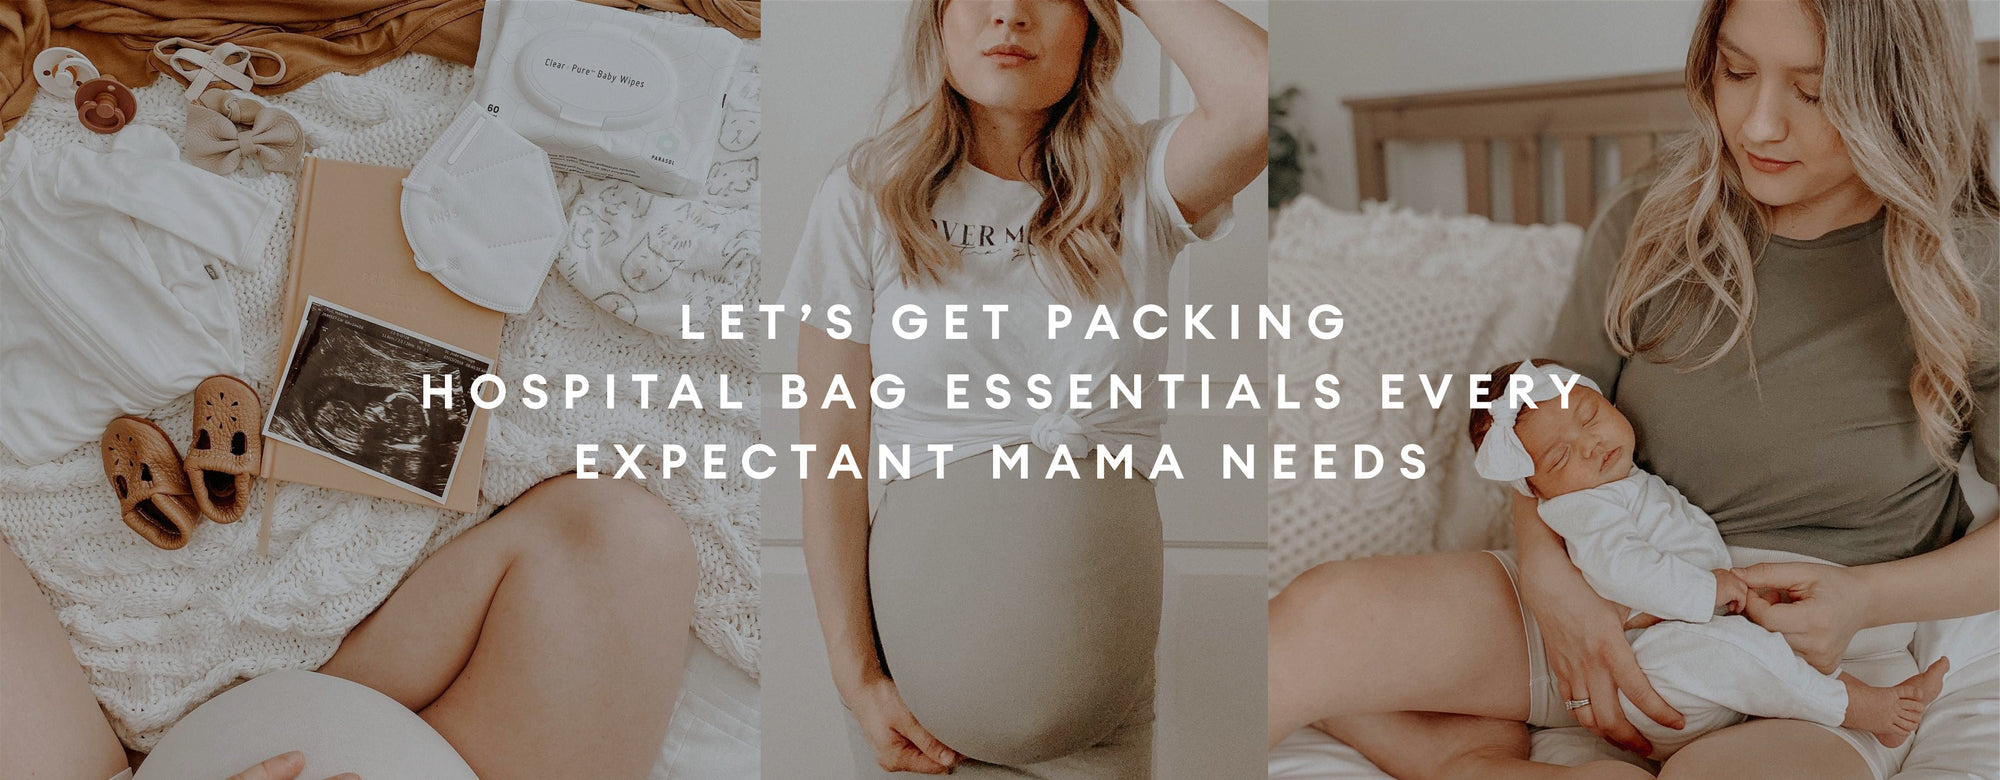 Let's get packing hospital Bag Essentials Every Expectant Mama needs